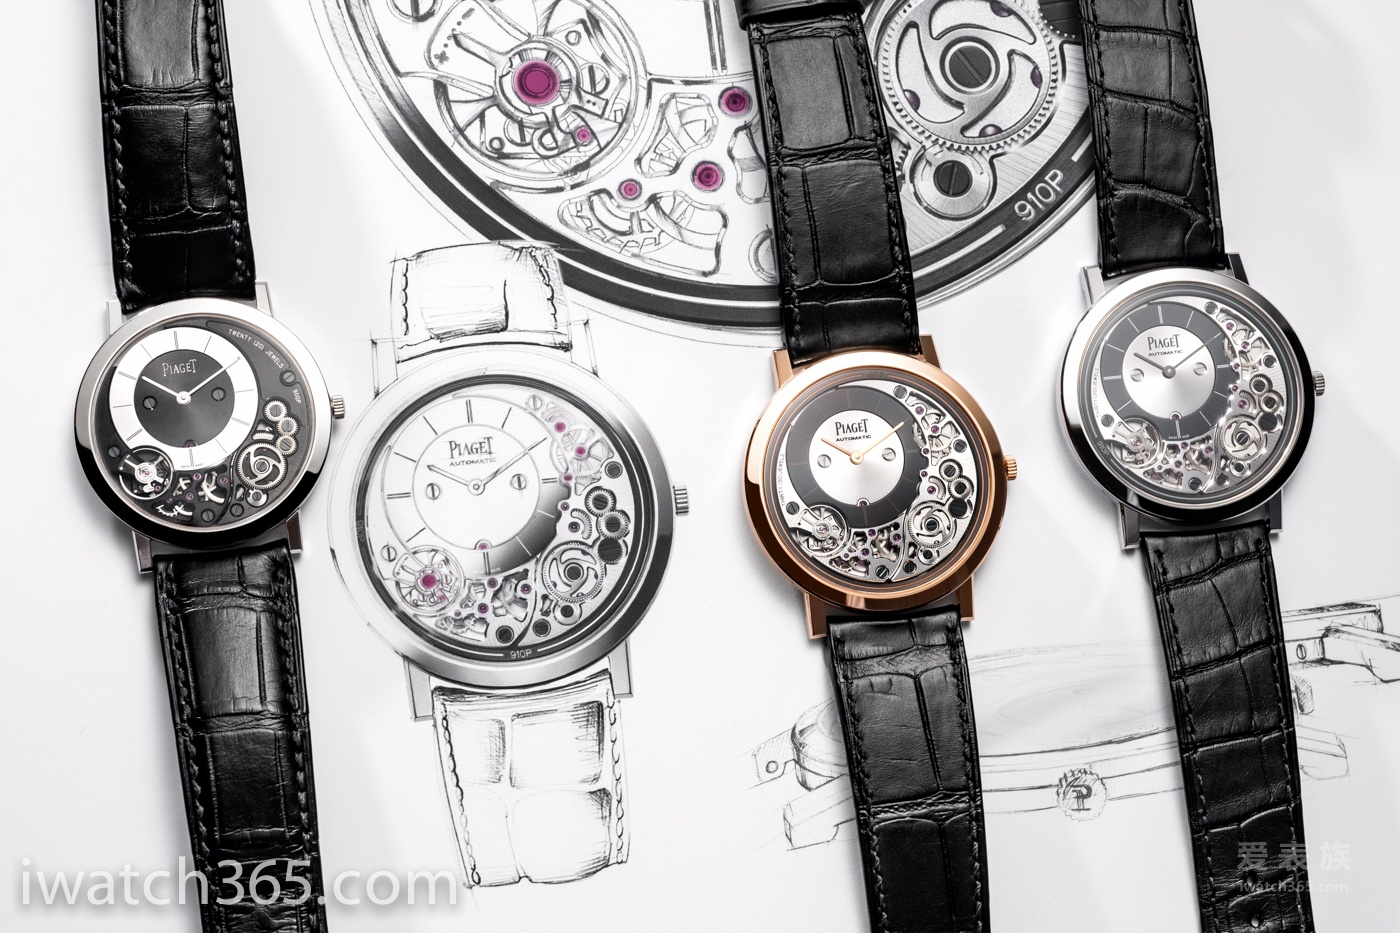 【SIHH2018】Piaget Altiplano Ultimate Automatic 至臻至薄,优雅魅力难以抗拒